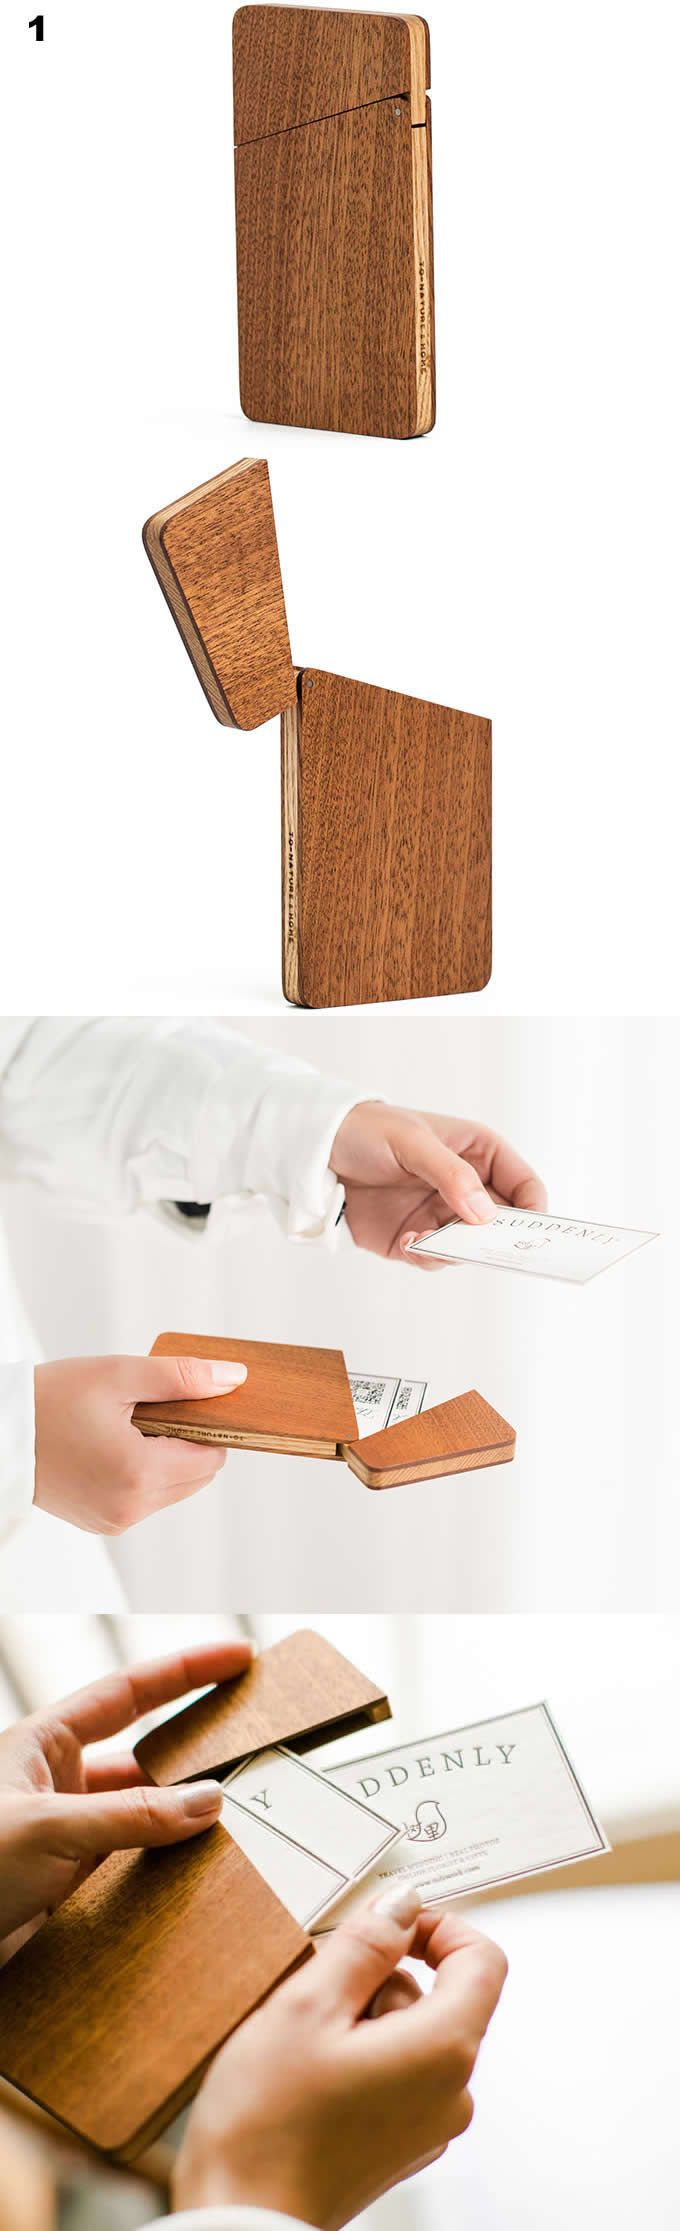 Wooden Name Card Holder Photo, Detailed about Wooden Name Card ...